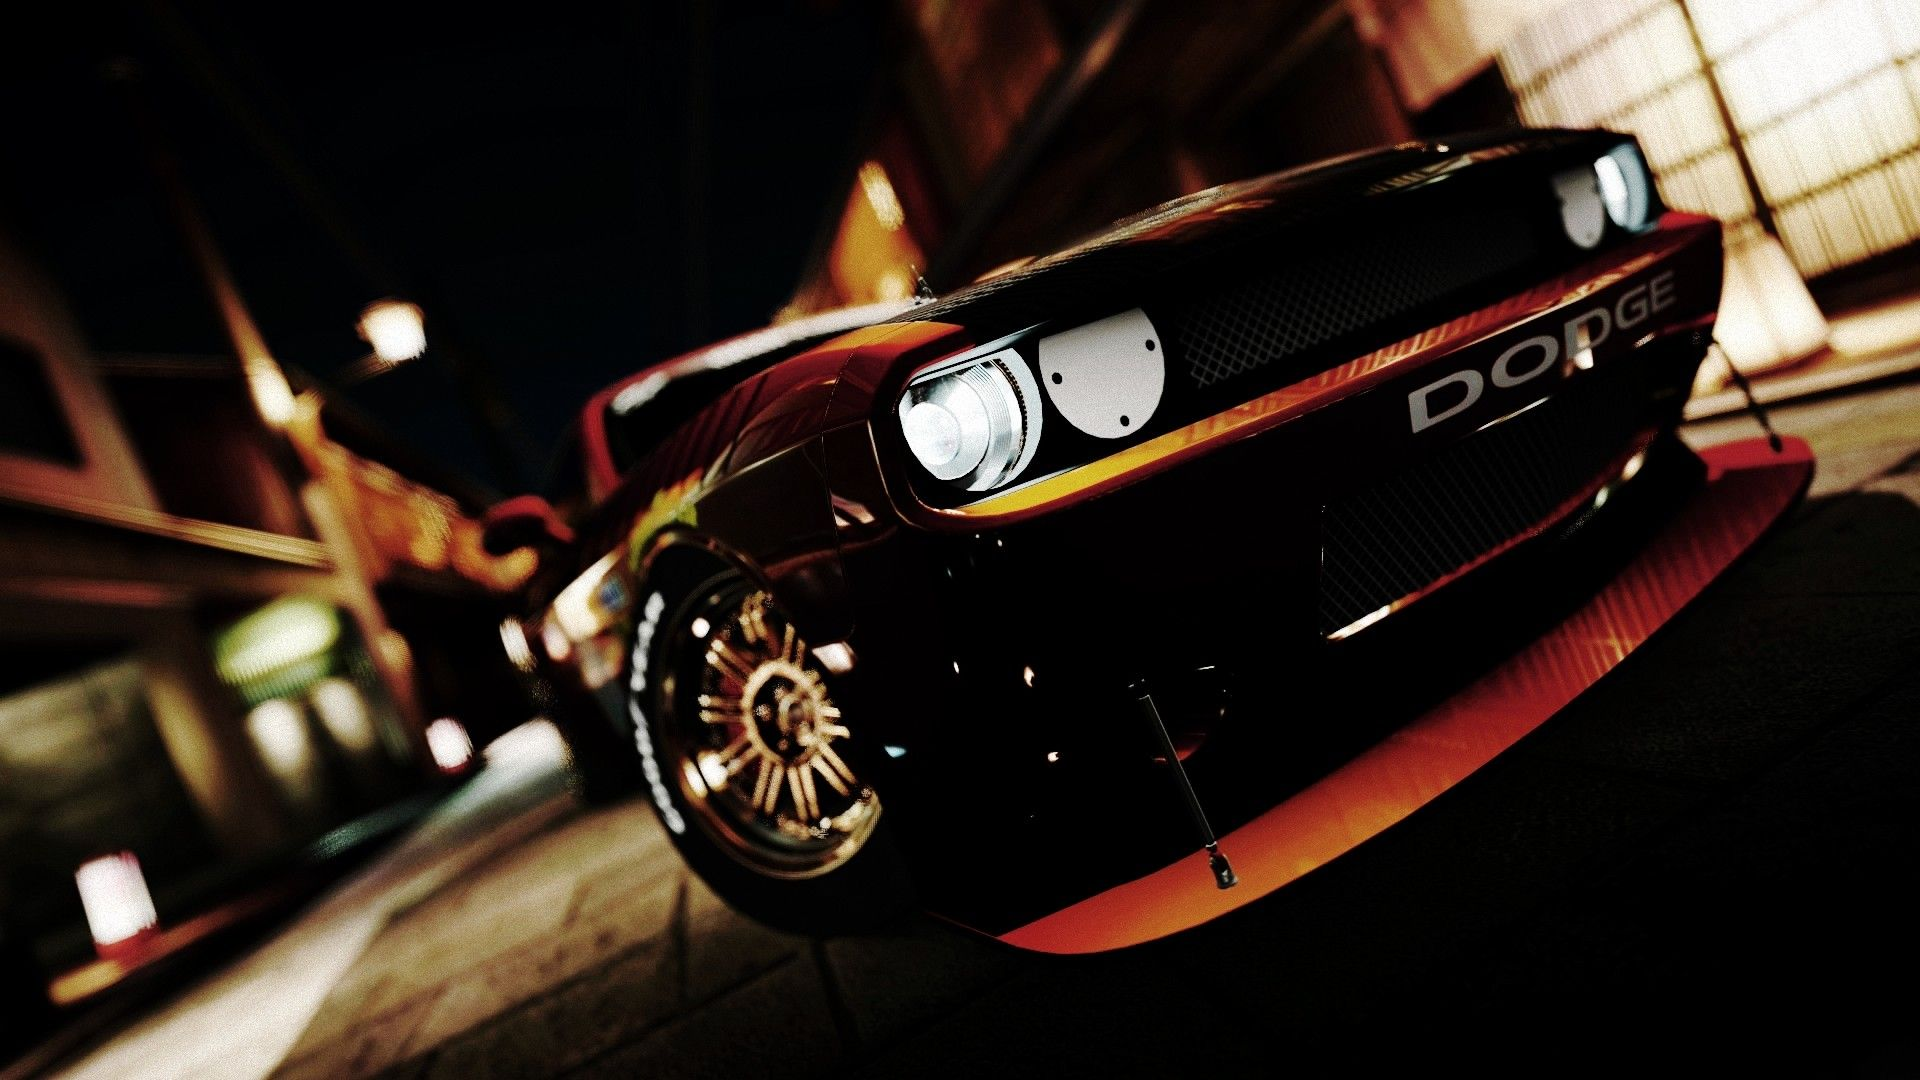 Make it easy with our tips on application. Forza Muscle Hd Wallpapers 1080p Cars Car Hd Car Wallpapers Cool Sports Cars